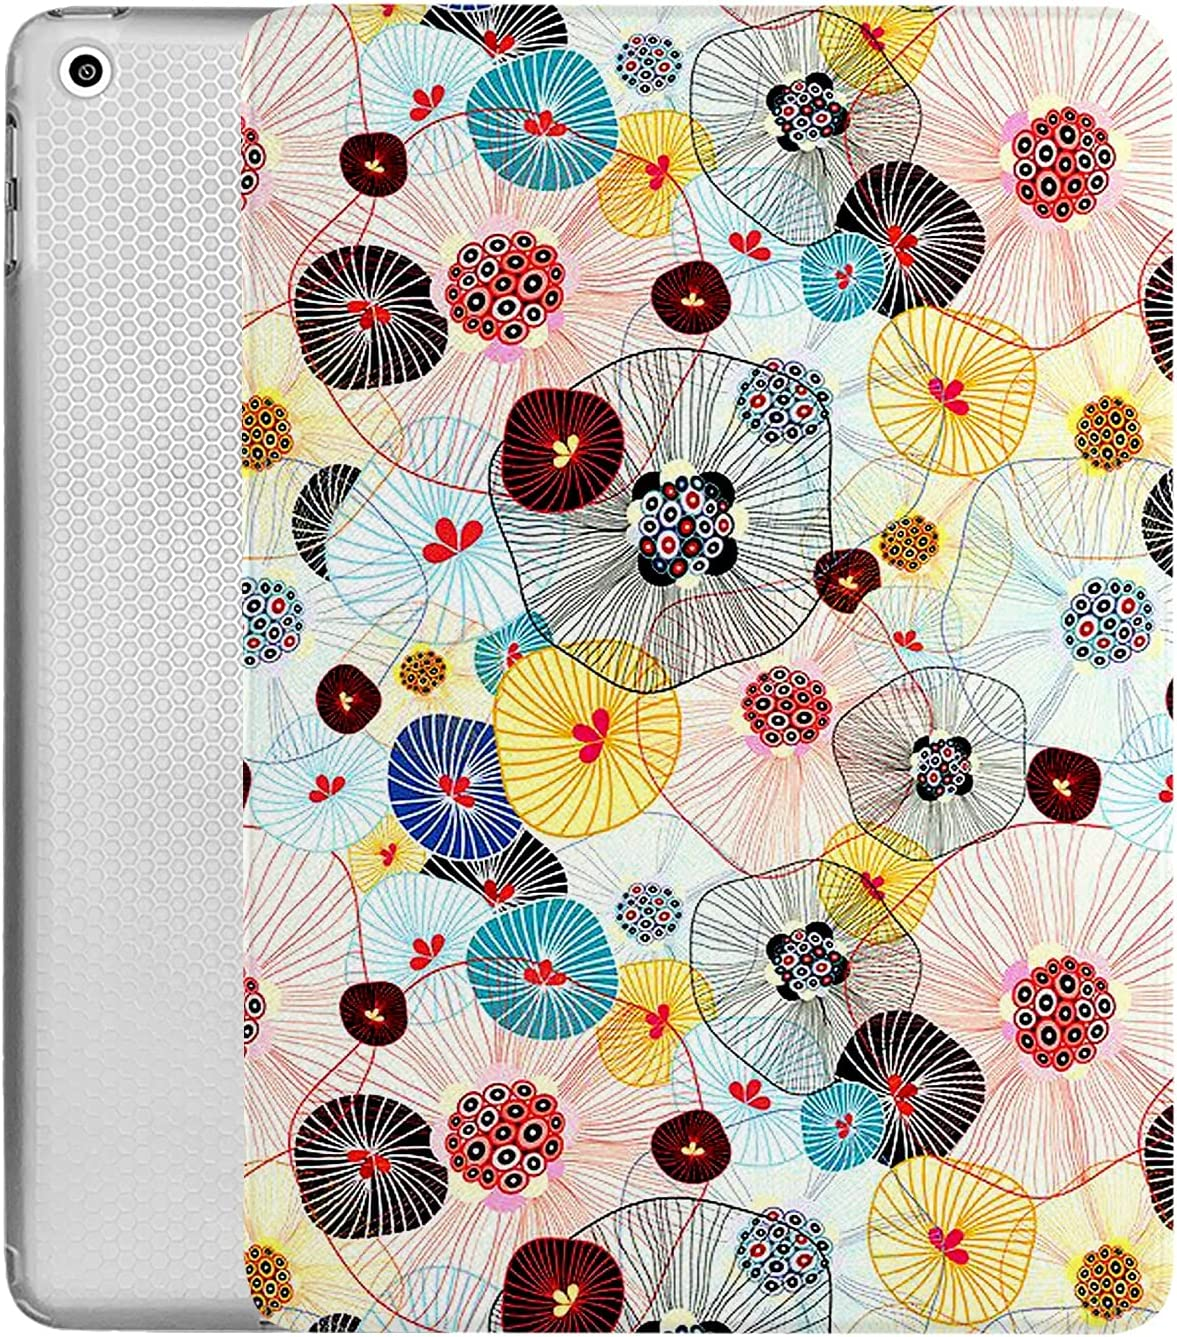 DuraSafe Cases For iPad 9.7 Case 2014 iPad Air 2nd Gen Slim Smart Protective Cover Soft TPU Honeycomb Clear Back & Viewing/Typing Stand for iPad 9.7